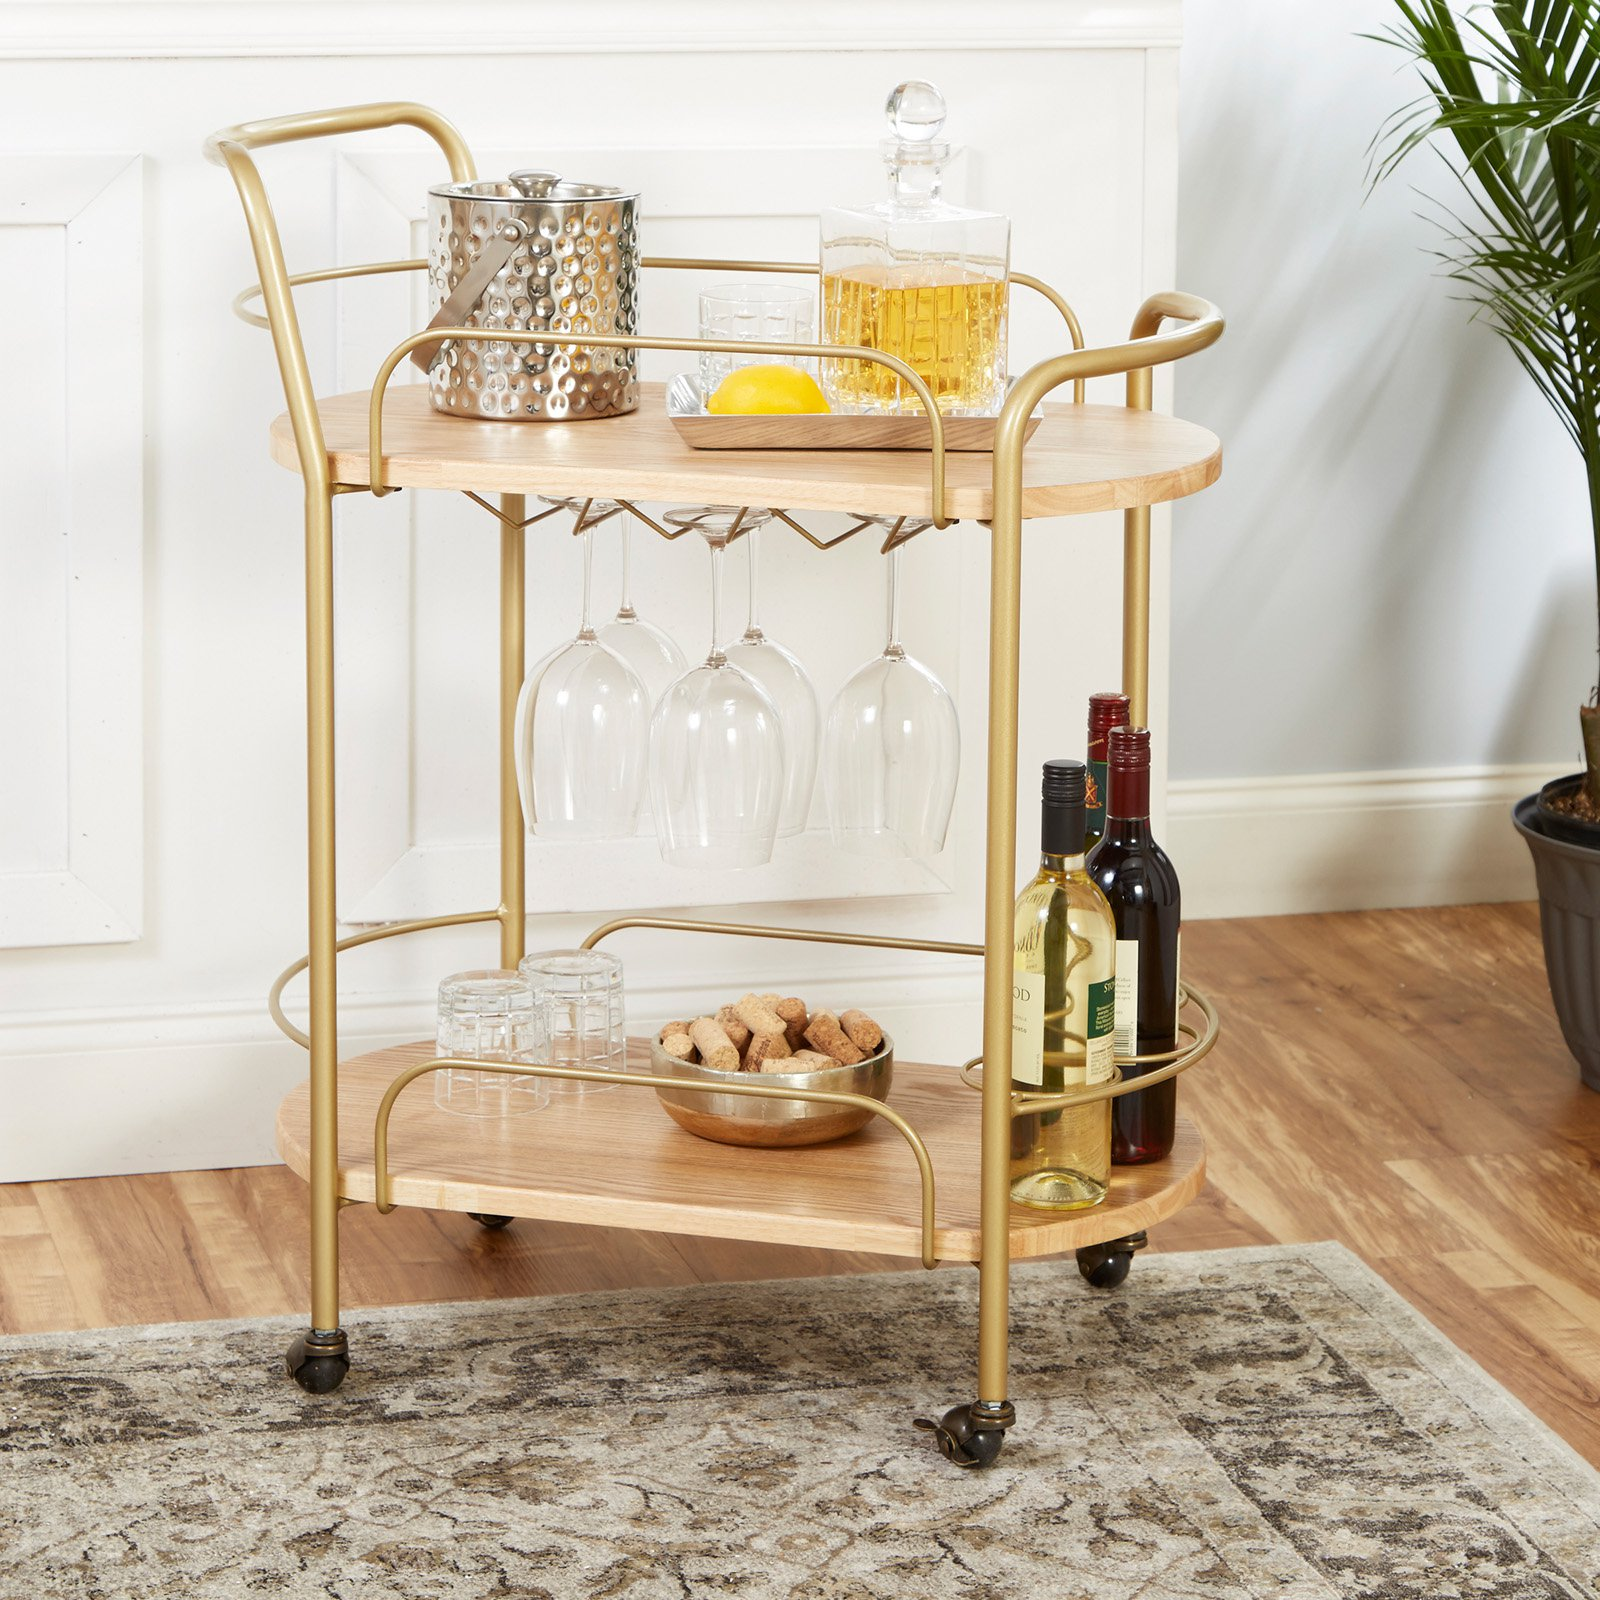 Wyndham Two-Tier Steel Rolling Bar Cart with Handles